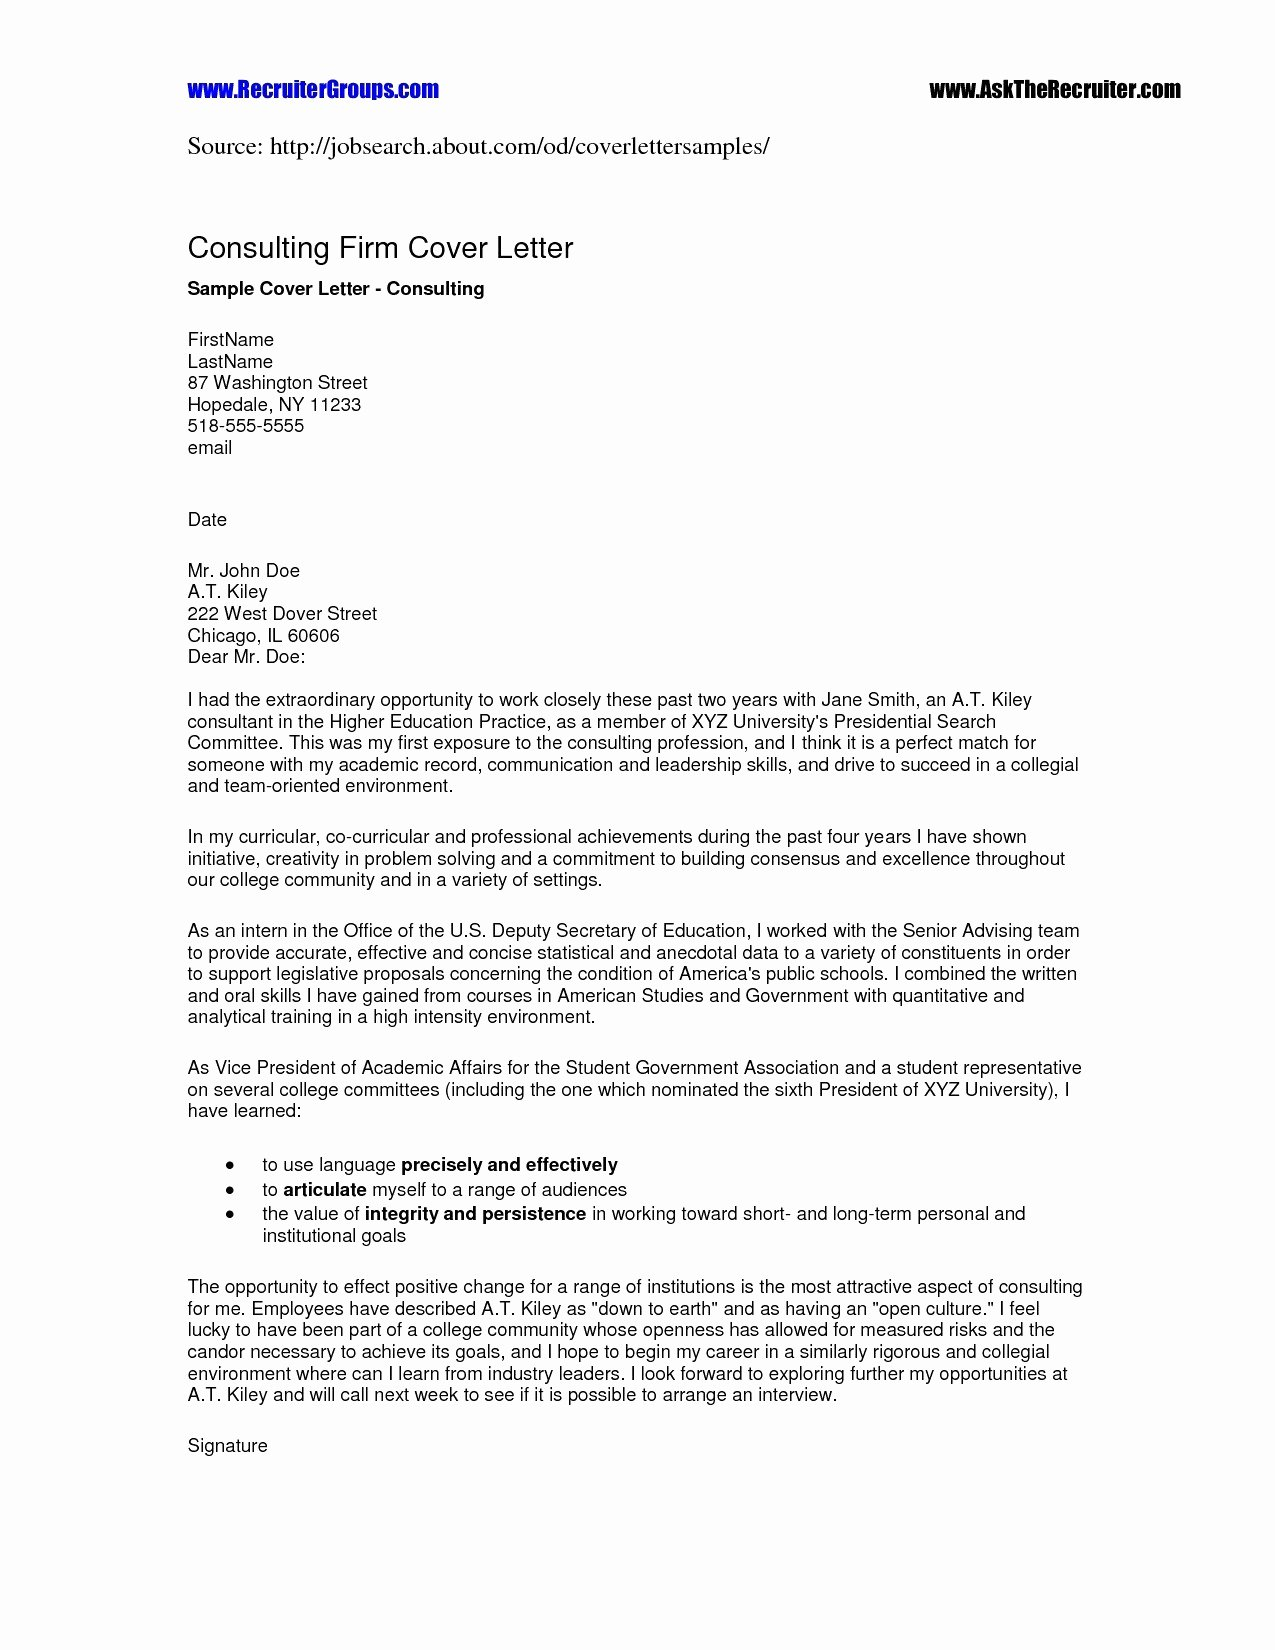 Statement Of Qualifications Example Letter Elegant 10 Statement Of Qualifications Template